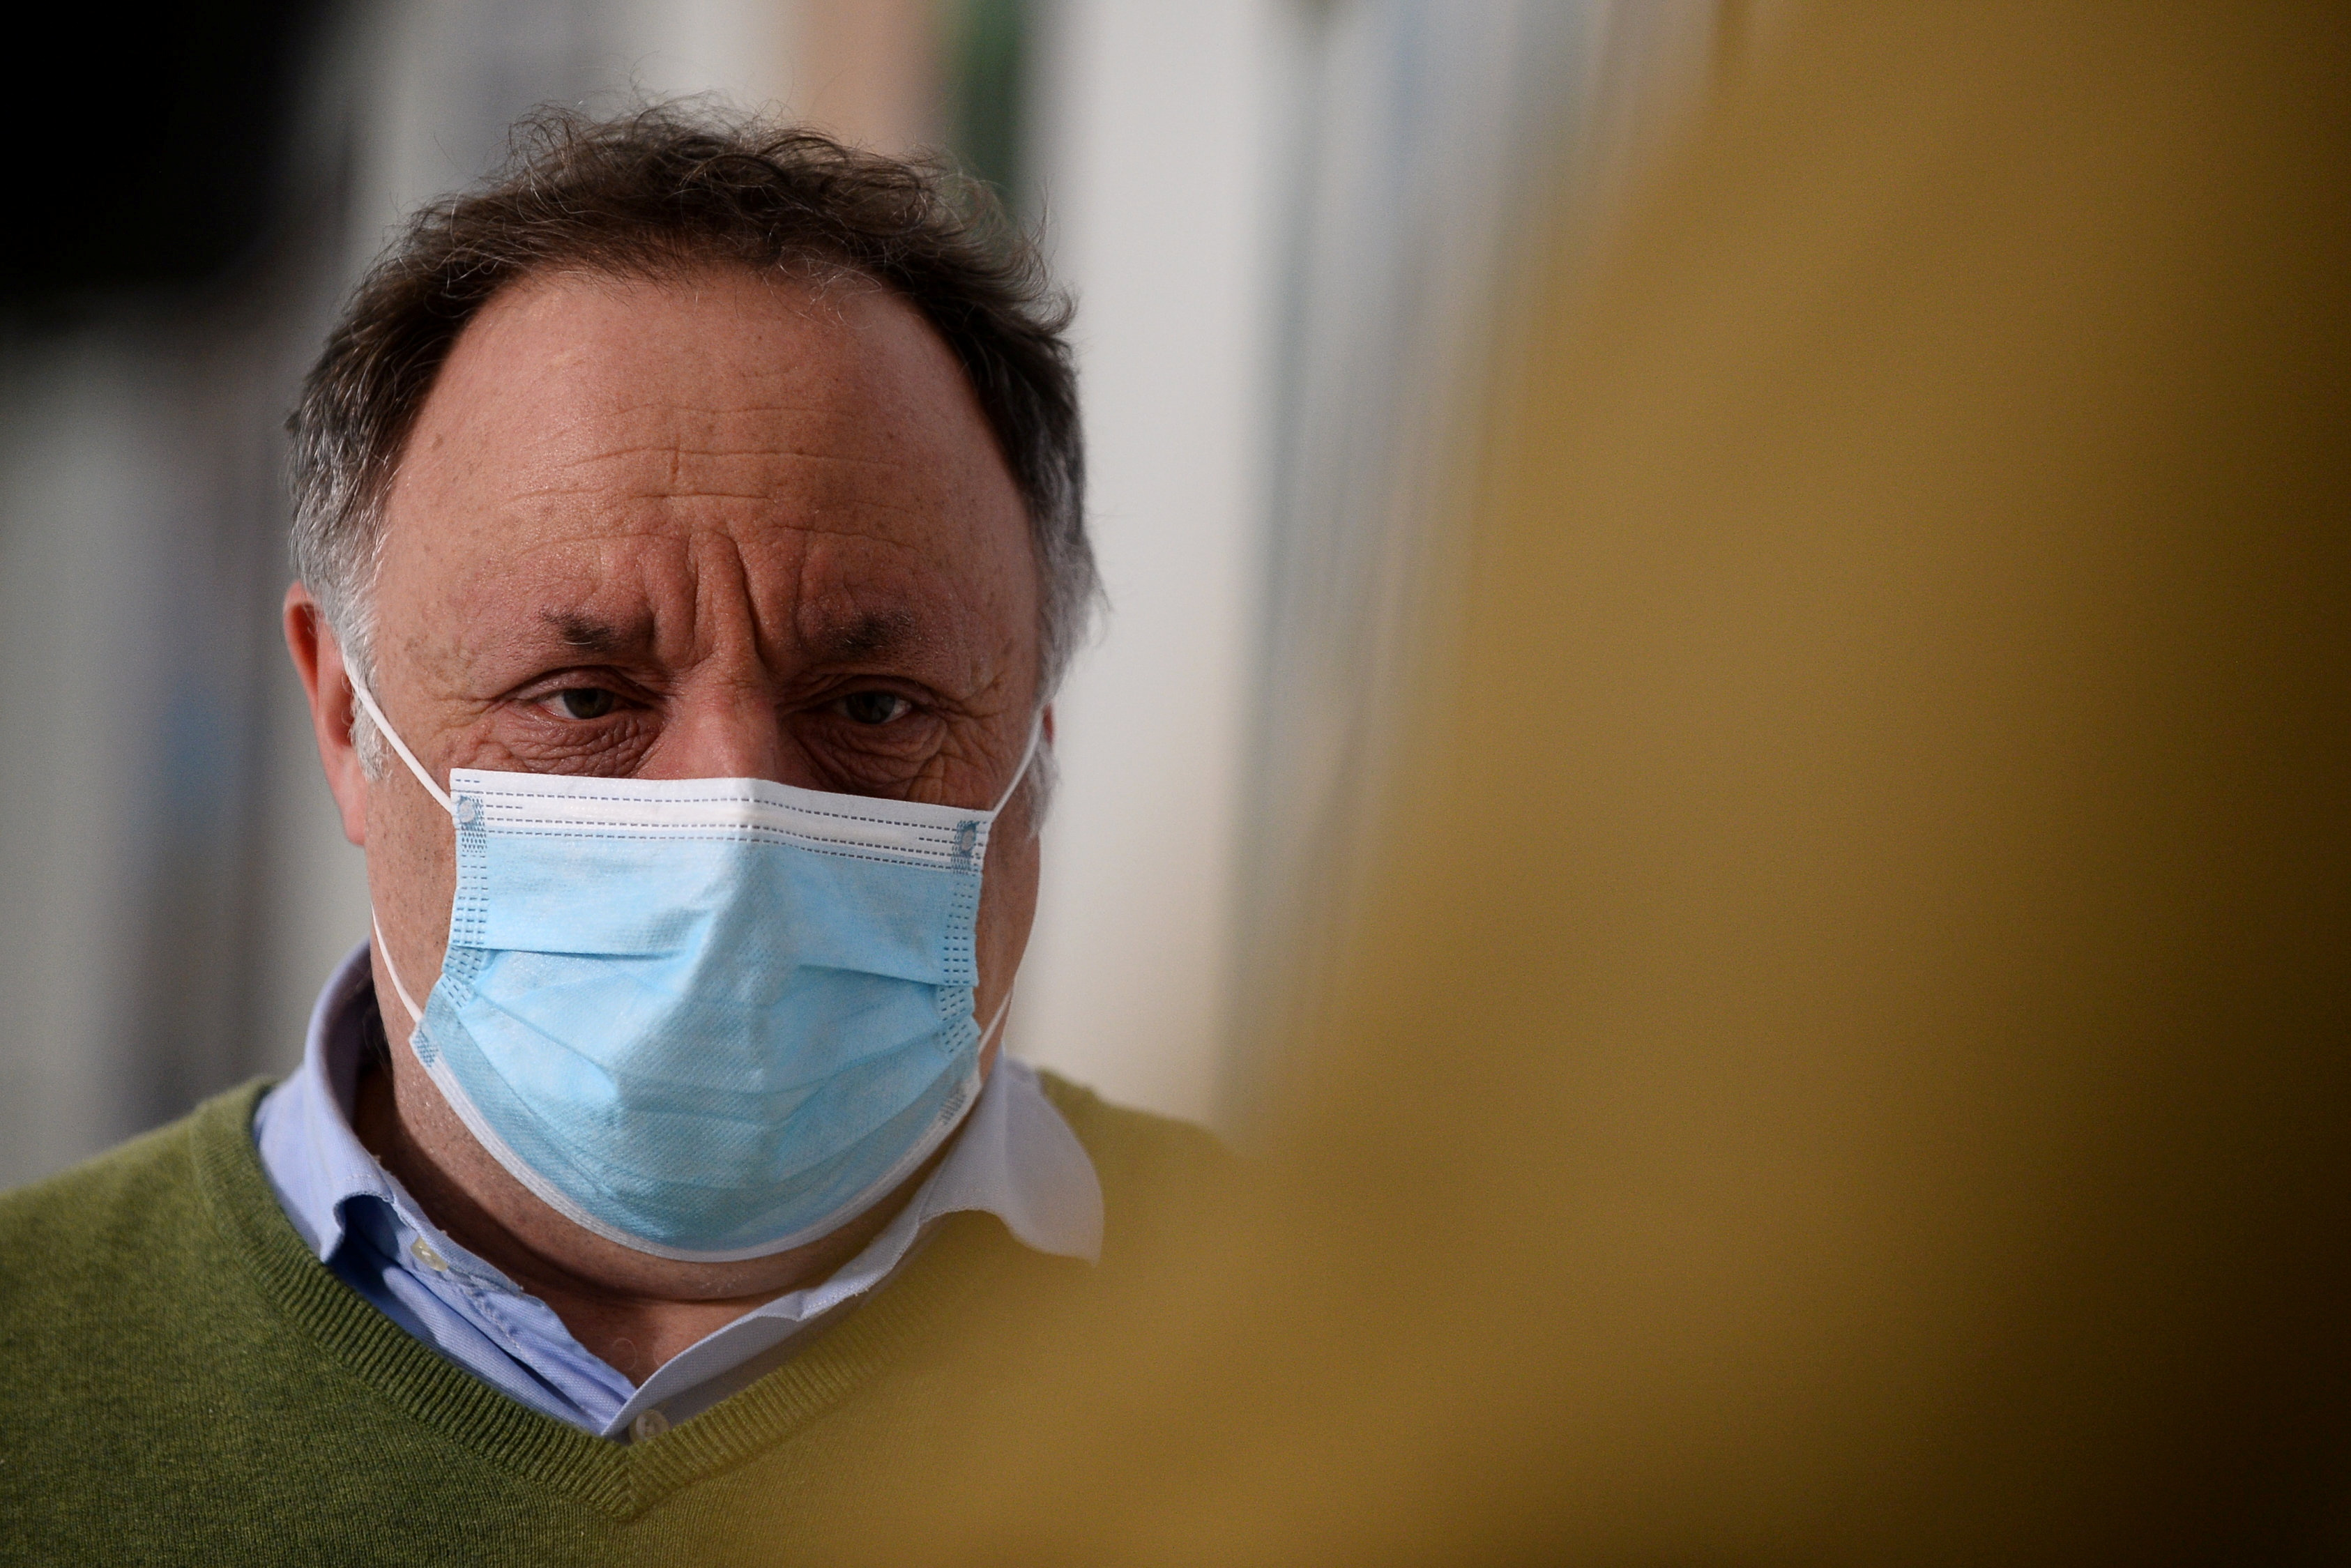 Belgian virologist Marc Van Ranst, wearing a protective face mask, talks during an interview with Reuters in Leuven, amid the coronavirus disease  (COVID-19) outbreak in Belgium, February 2, 2021.REUTERS/Johanna Geron